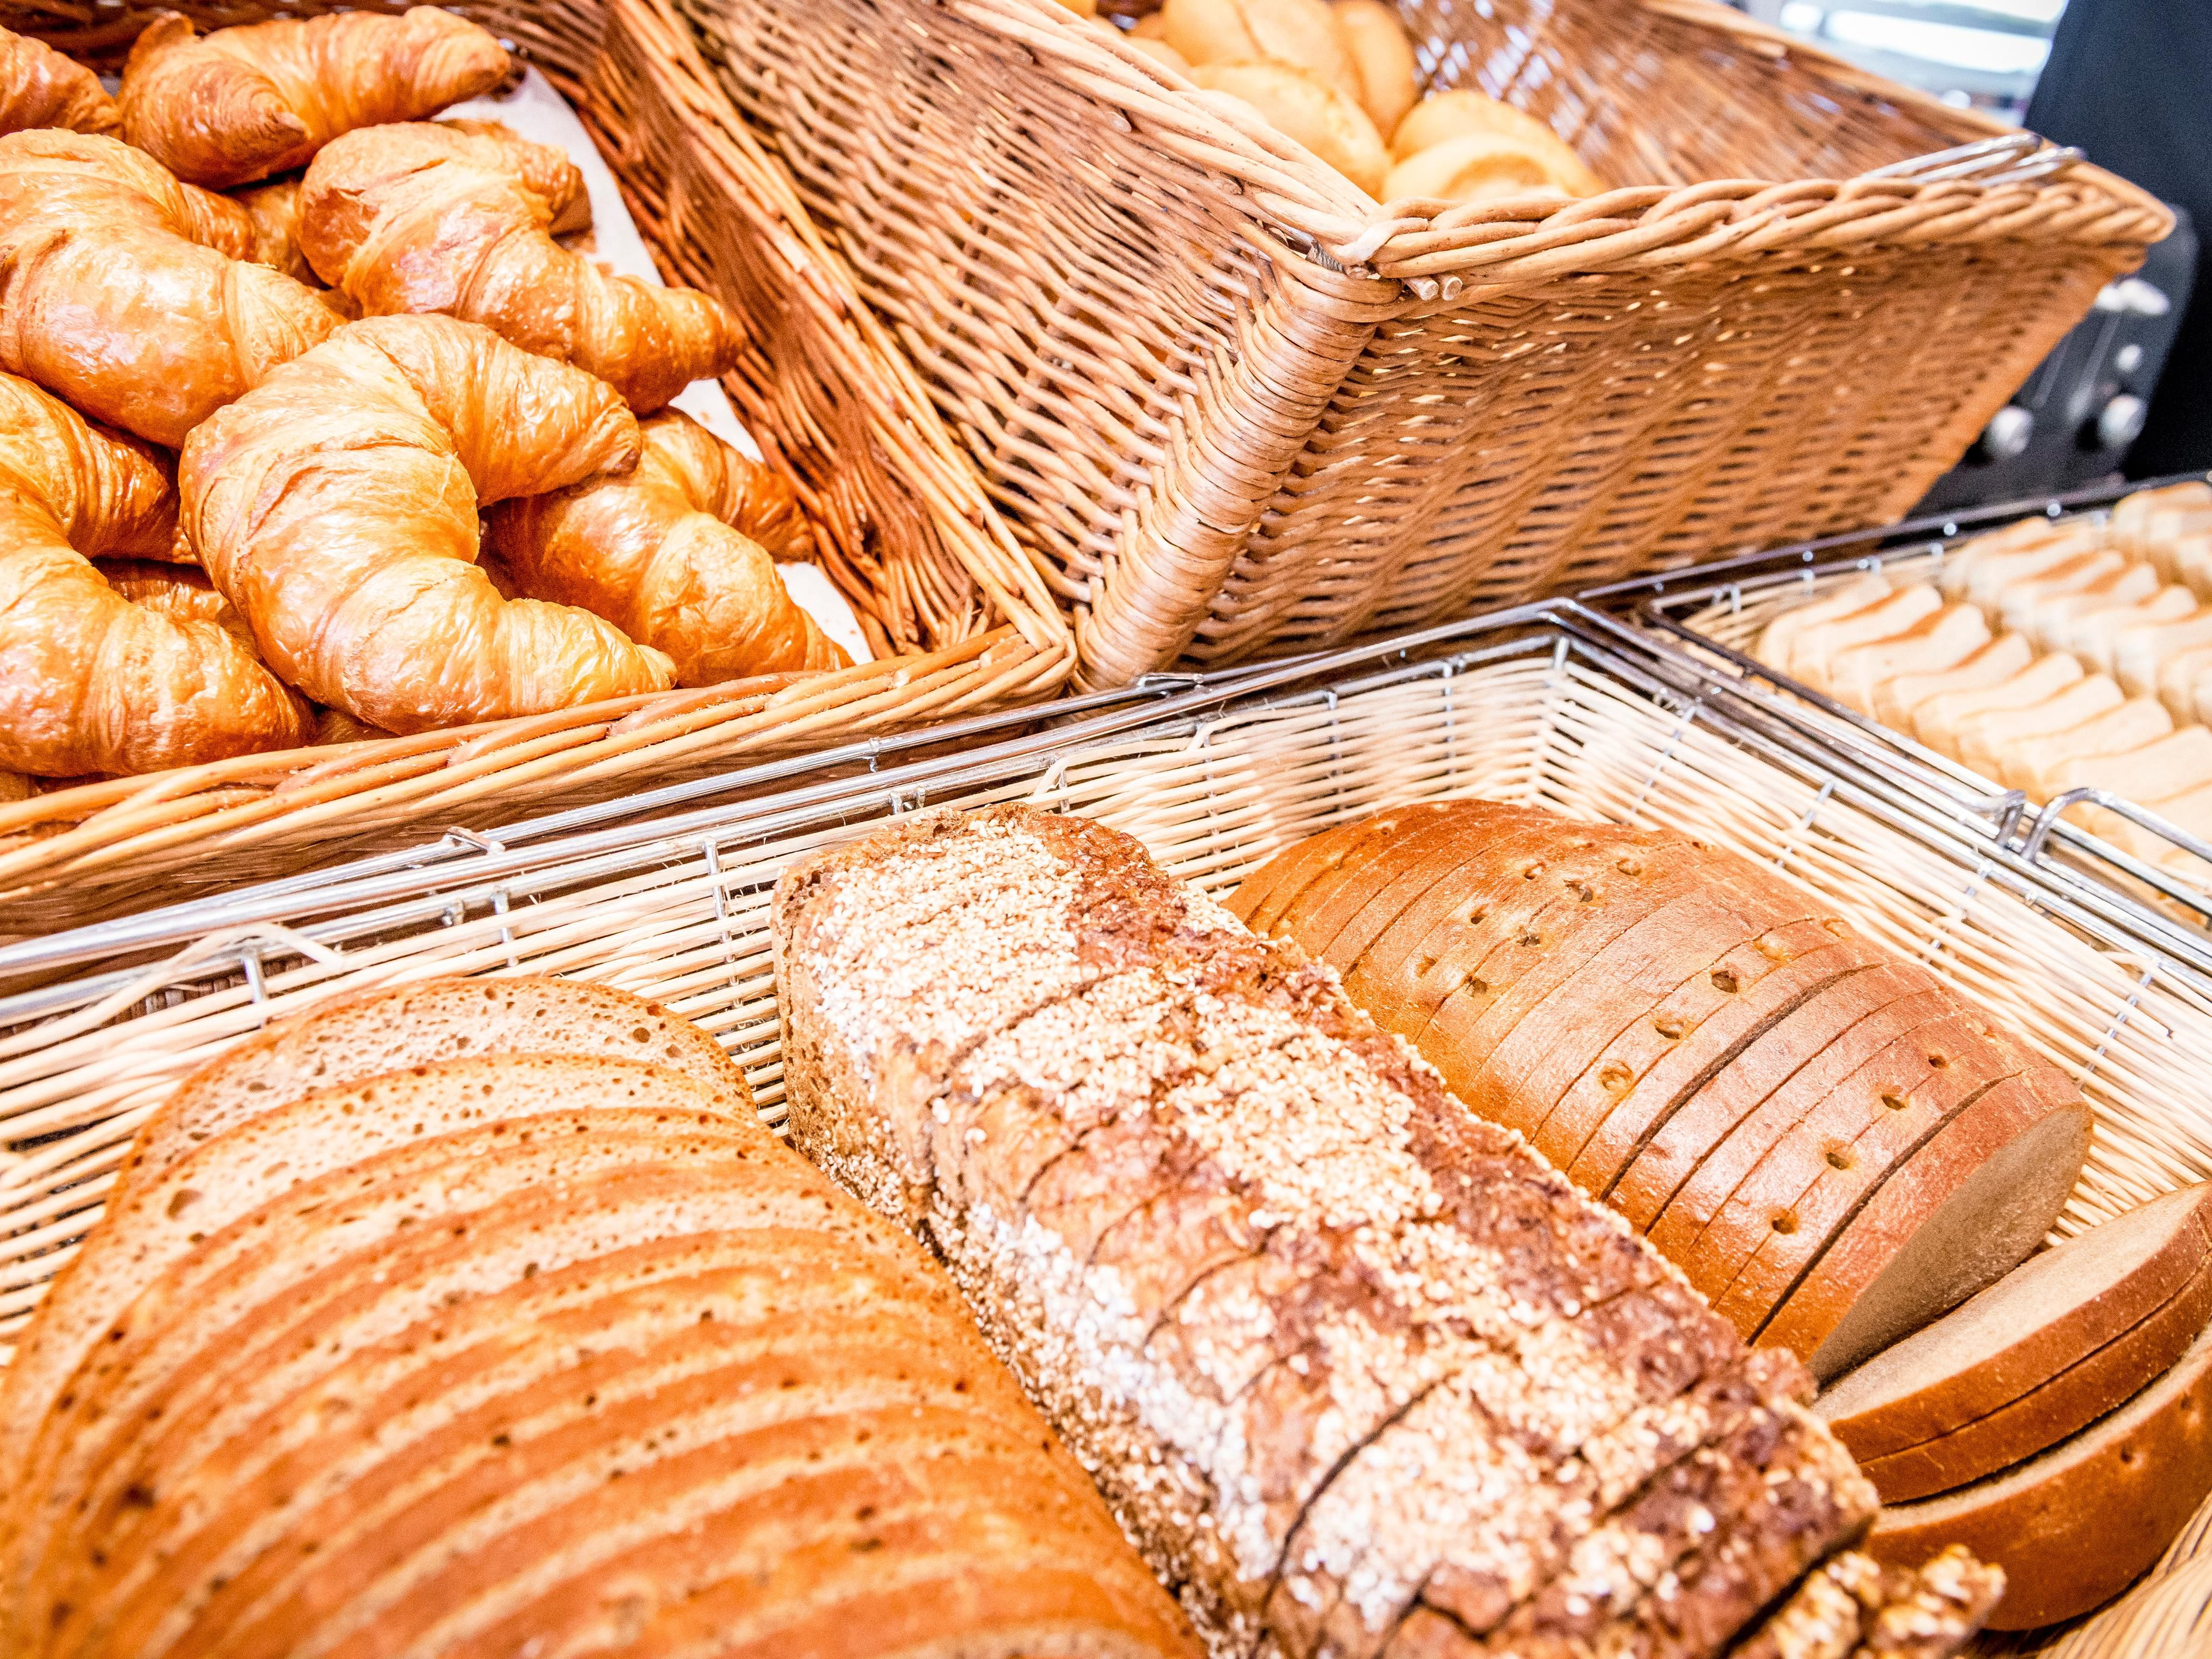 Wake up to delicious warm pastries